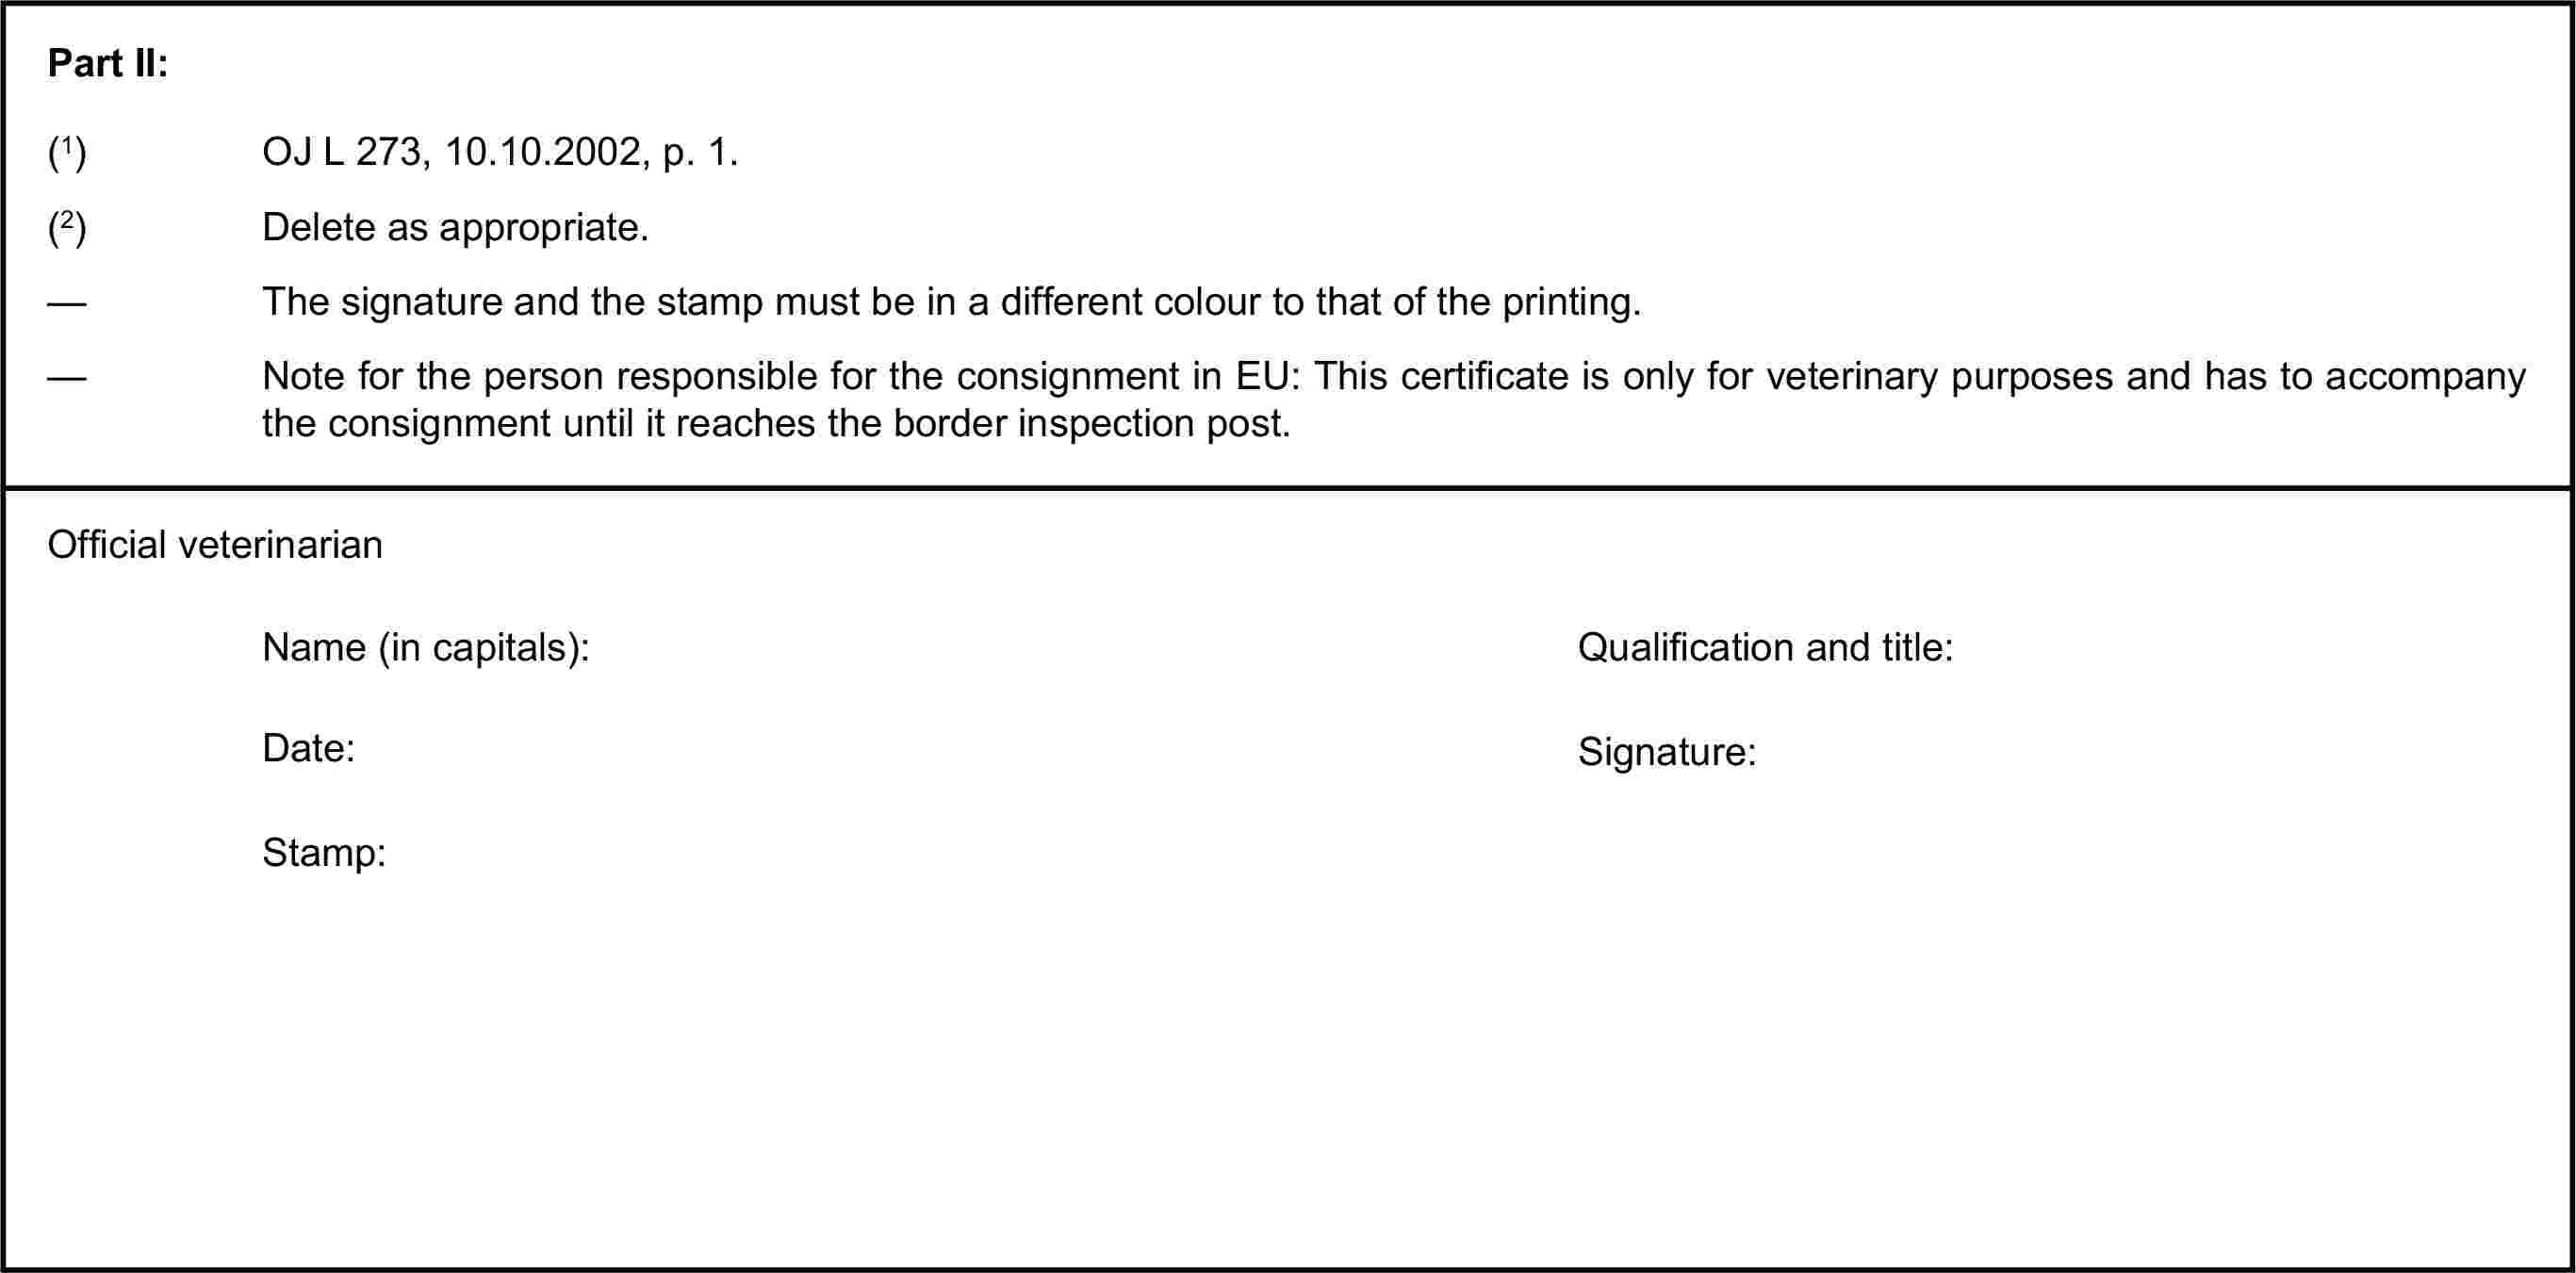 Part II:(1) OJ L 273, 10.10.2002, p. 1.(2) Delete as appropriate.— The signature and the stamp must be in a different colour to that of the printing.— Note for the person responsible for the consignment in EU: This certificate is only for veterinary purposes and has to accompany the consignment until it reaches the border inspection post.Official veterinarianName (in capitals):Qualification and title:Date:Signature:Stamp: